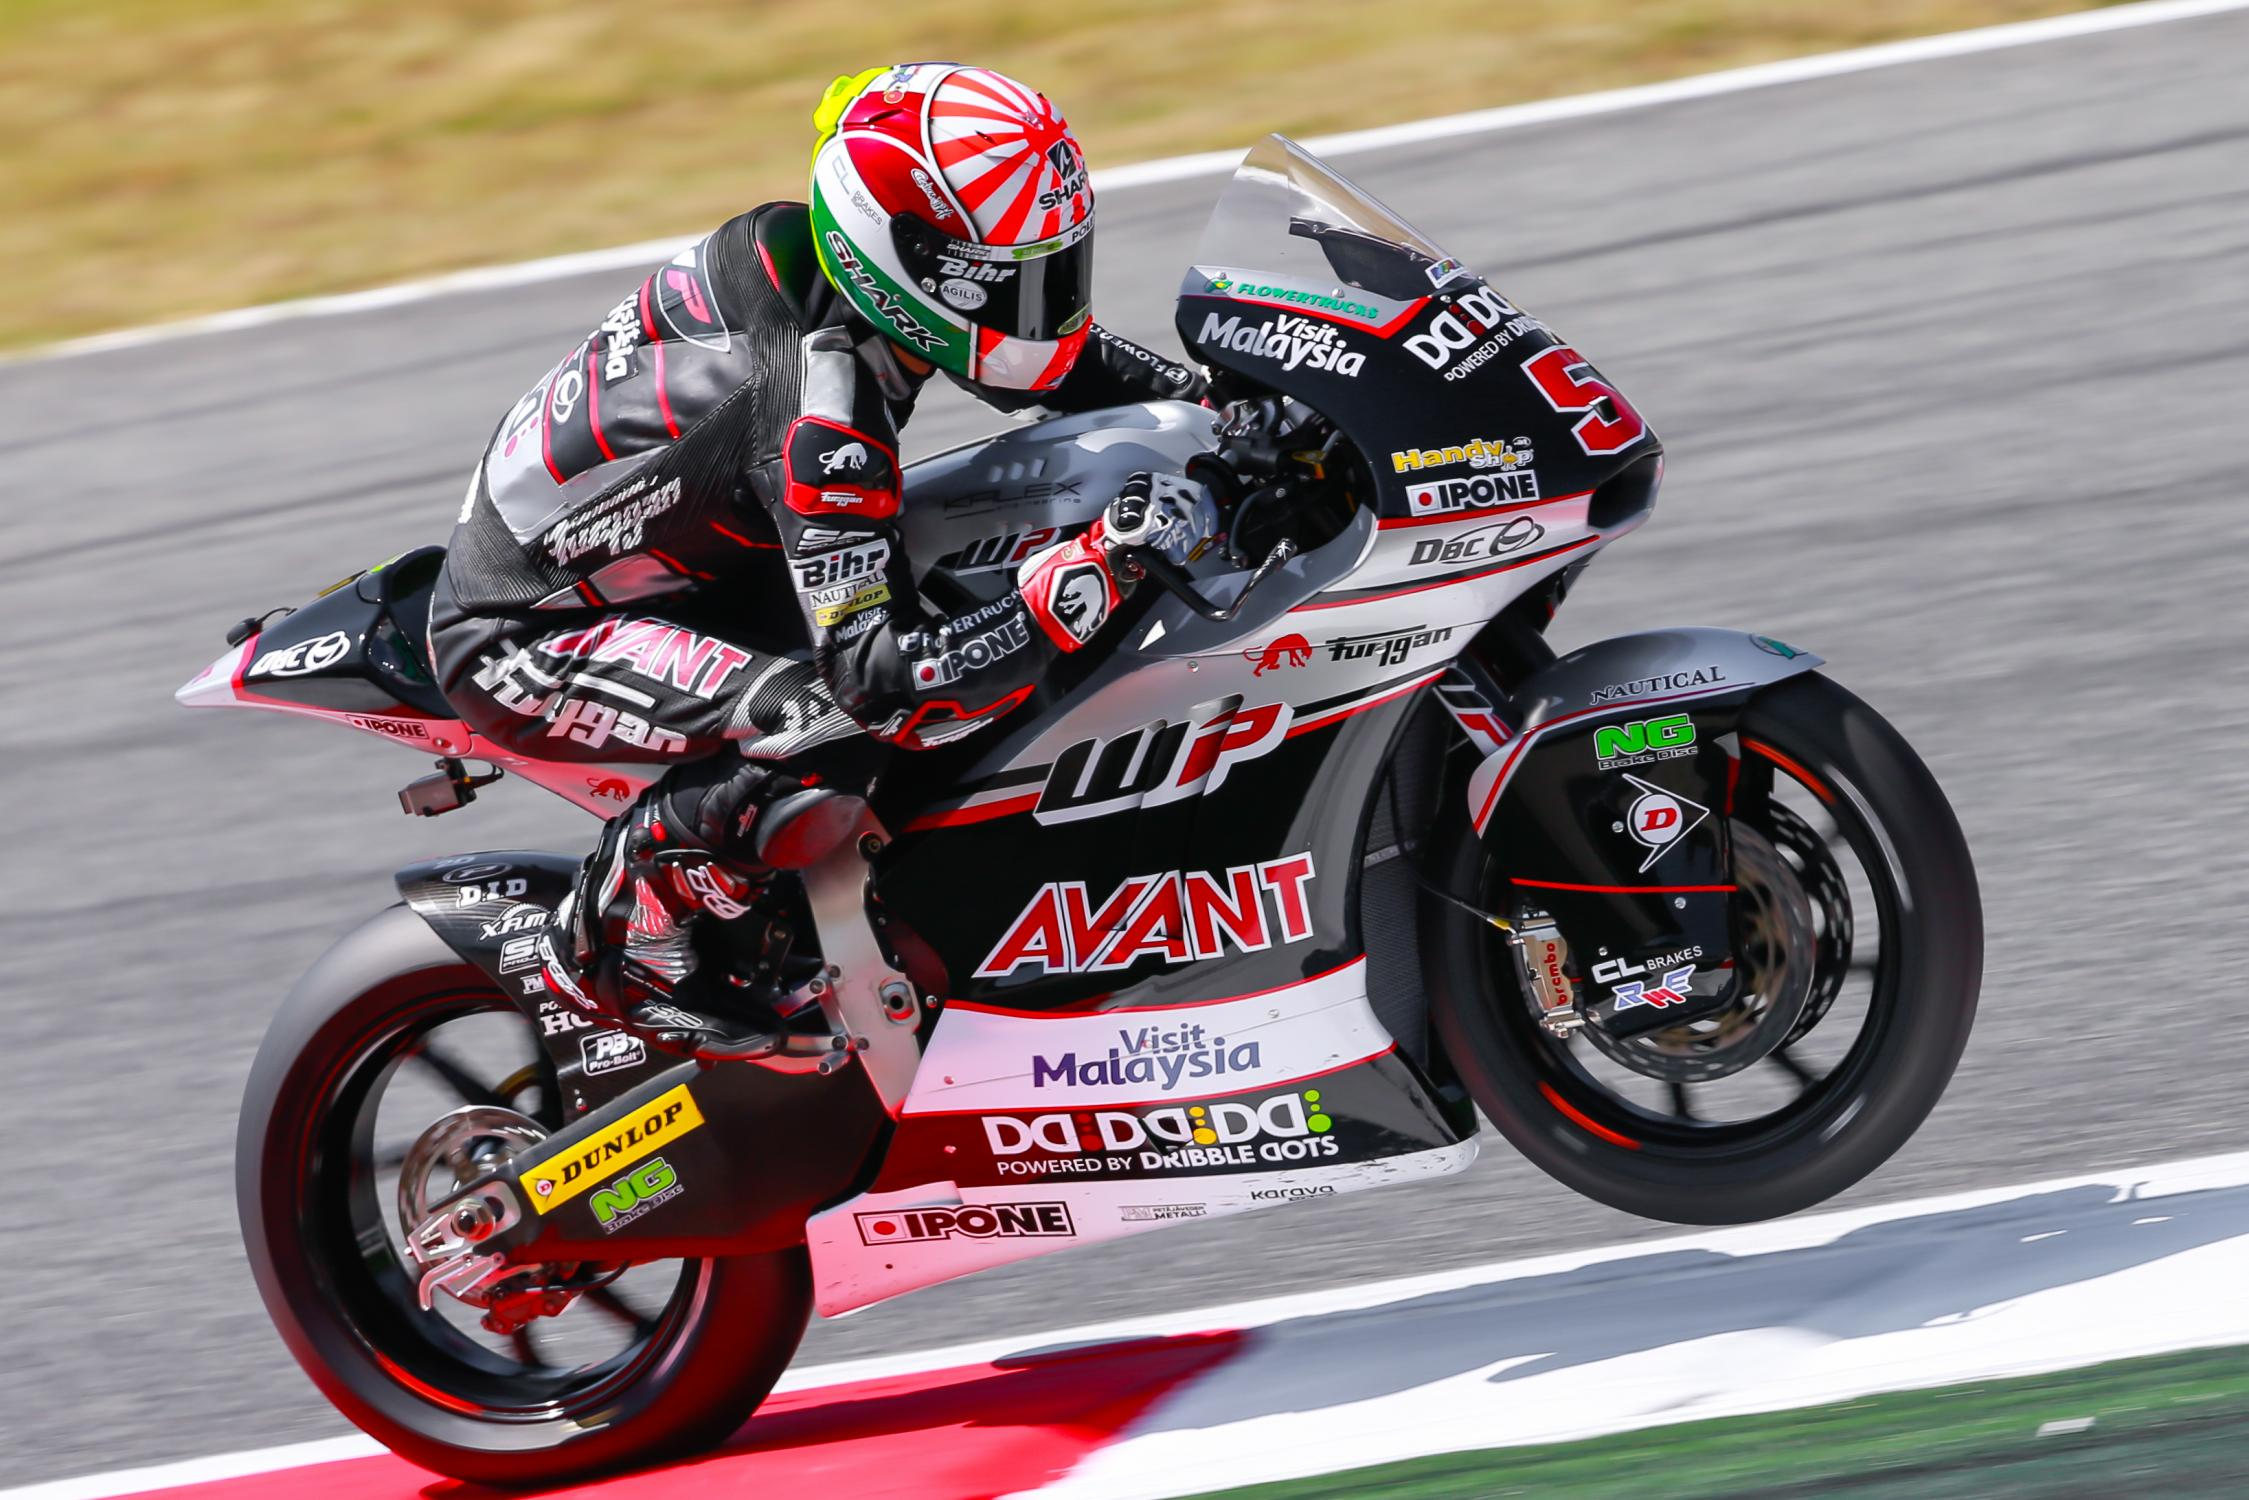 officiel johann zarco rejoindra tech3 en motogp pour 2017 actu moto. Black Bedroom Furniture Sets. Home Design Ideas